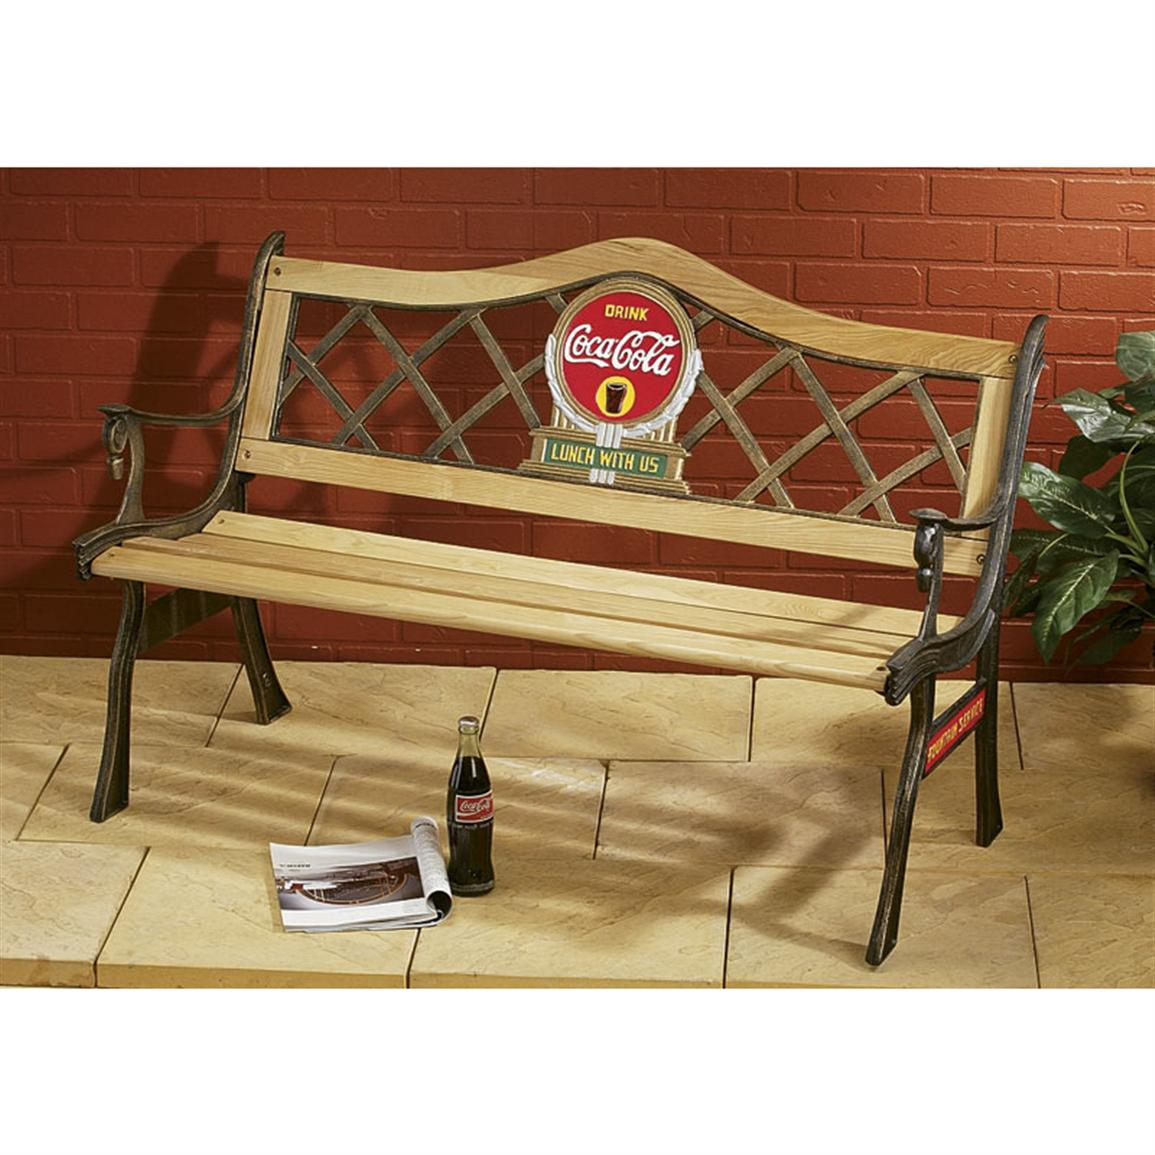 Coca Cola 174 Bench 82579 Patio Furniture At Sportsman S Guide